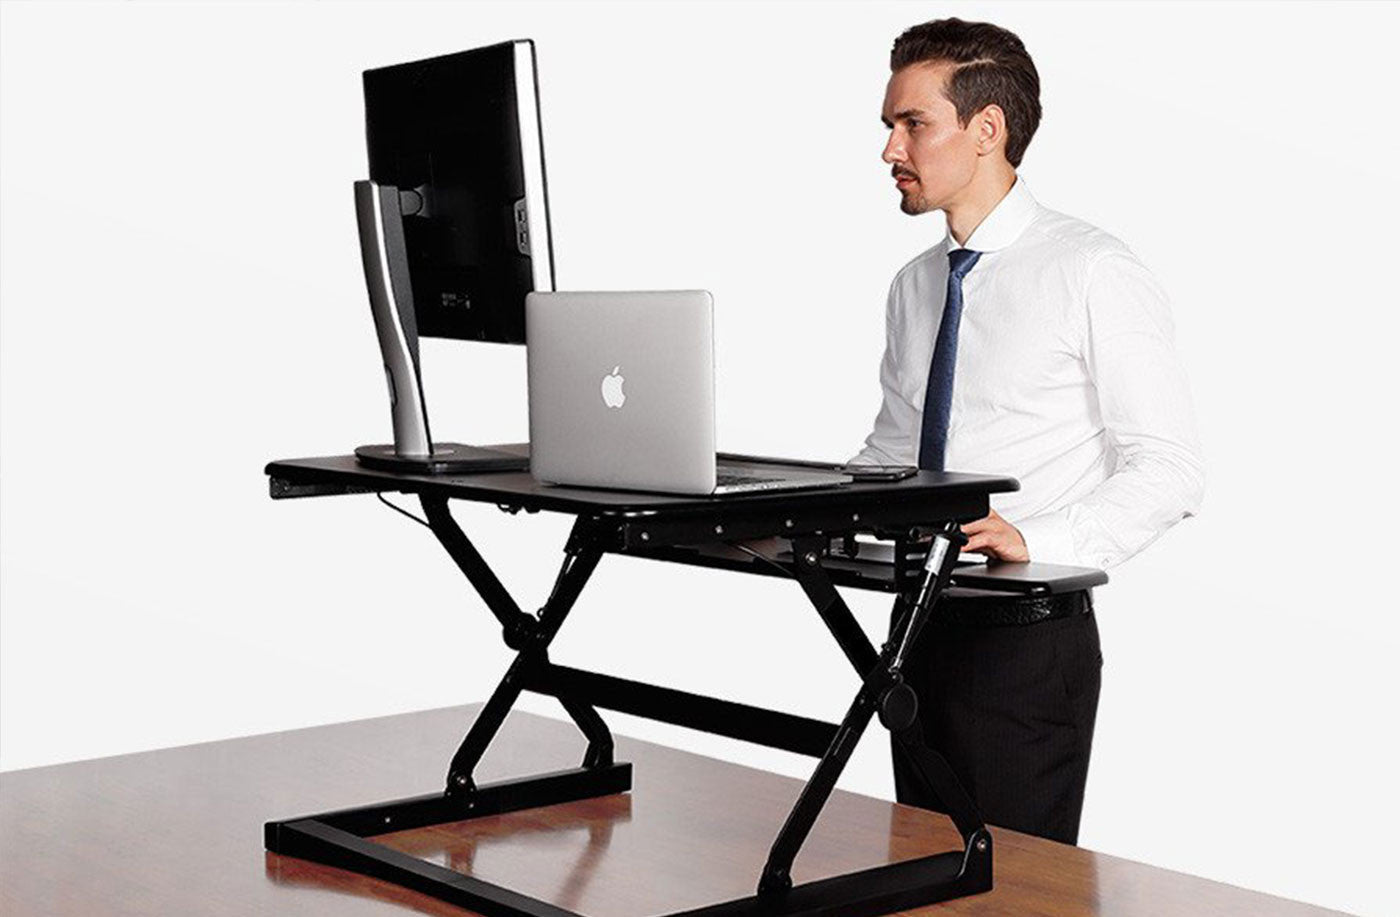 7 Science-Based Benefits of a Standing Desk | Office 1010